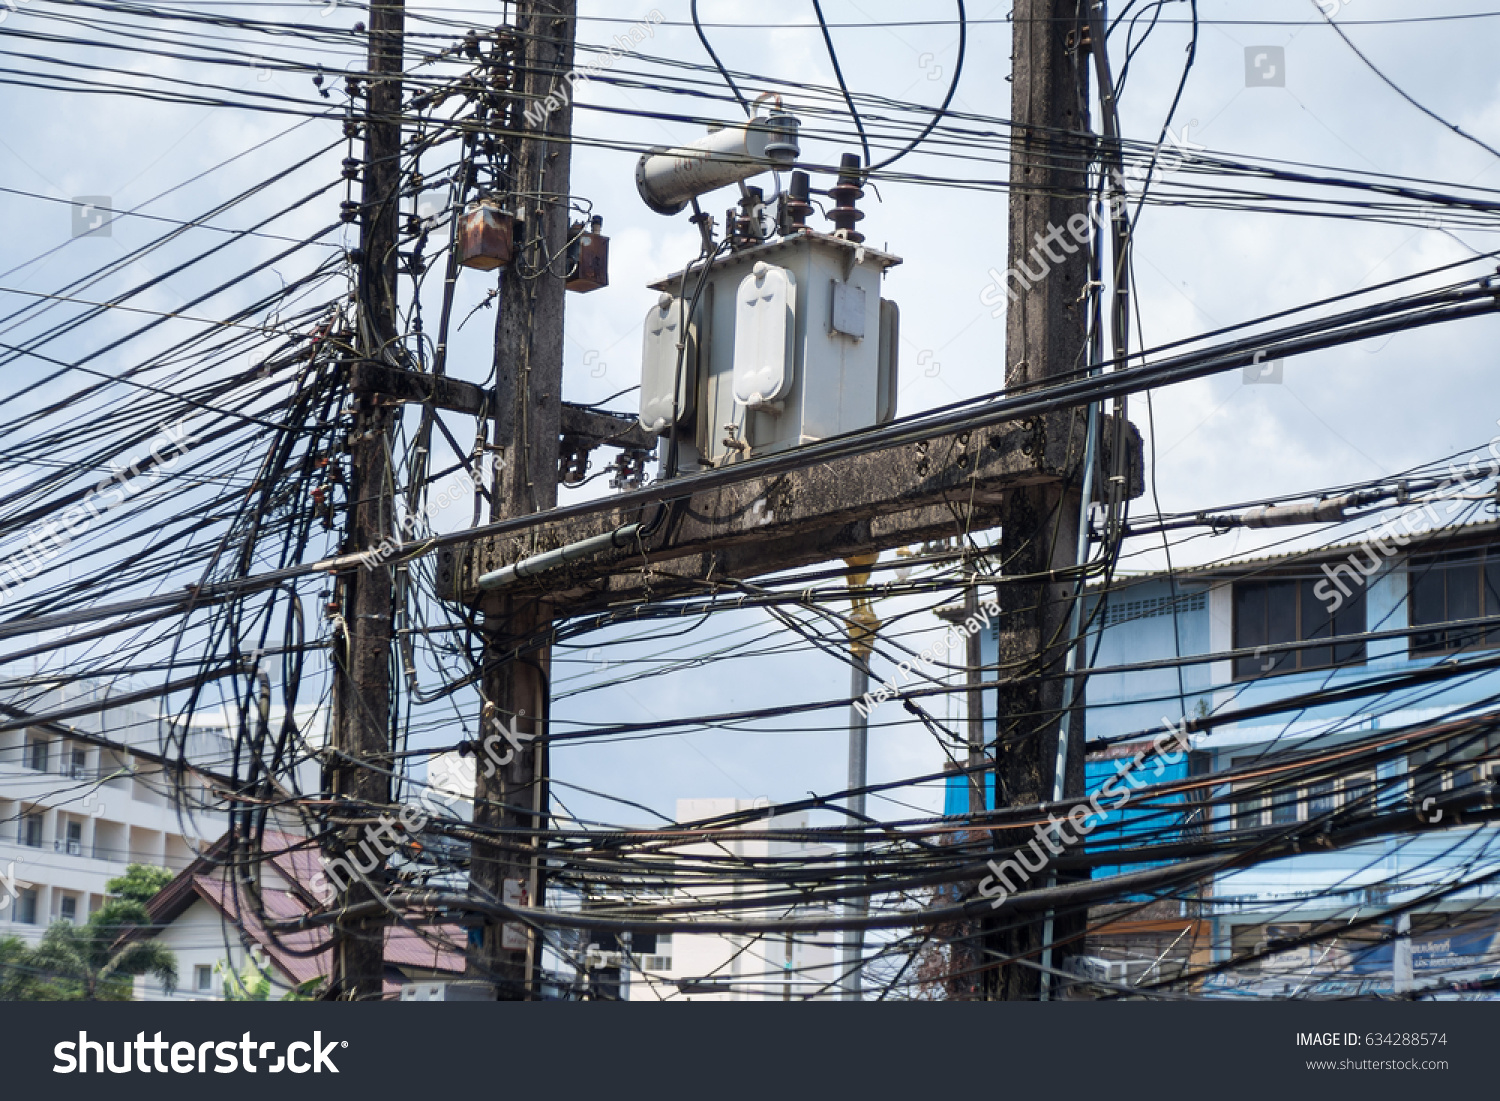 Thailand Very Messy Wires Dangerous Electrical Stock Photo Edit Now Wiring Pictures With Transformer And Power Lines On Electric Pole